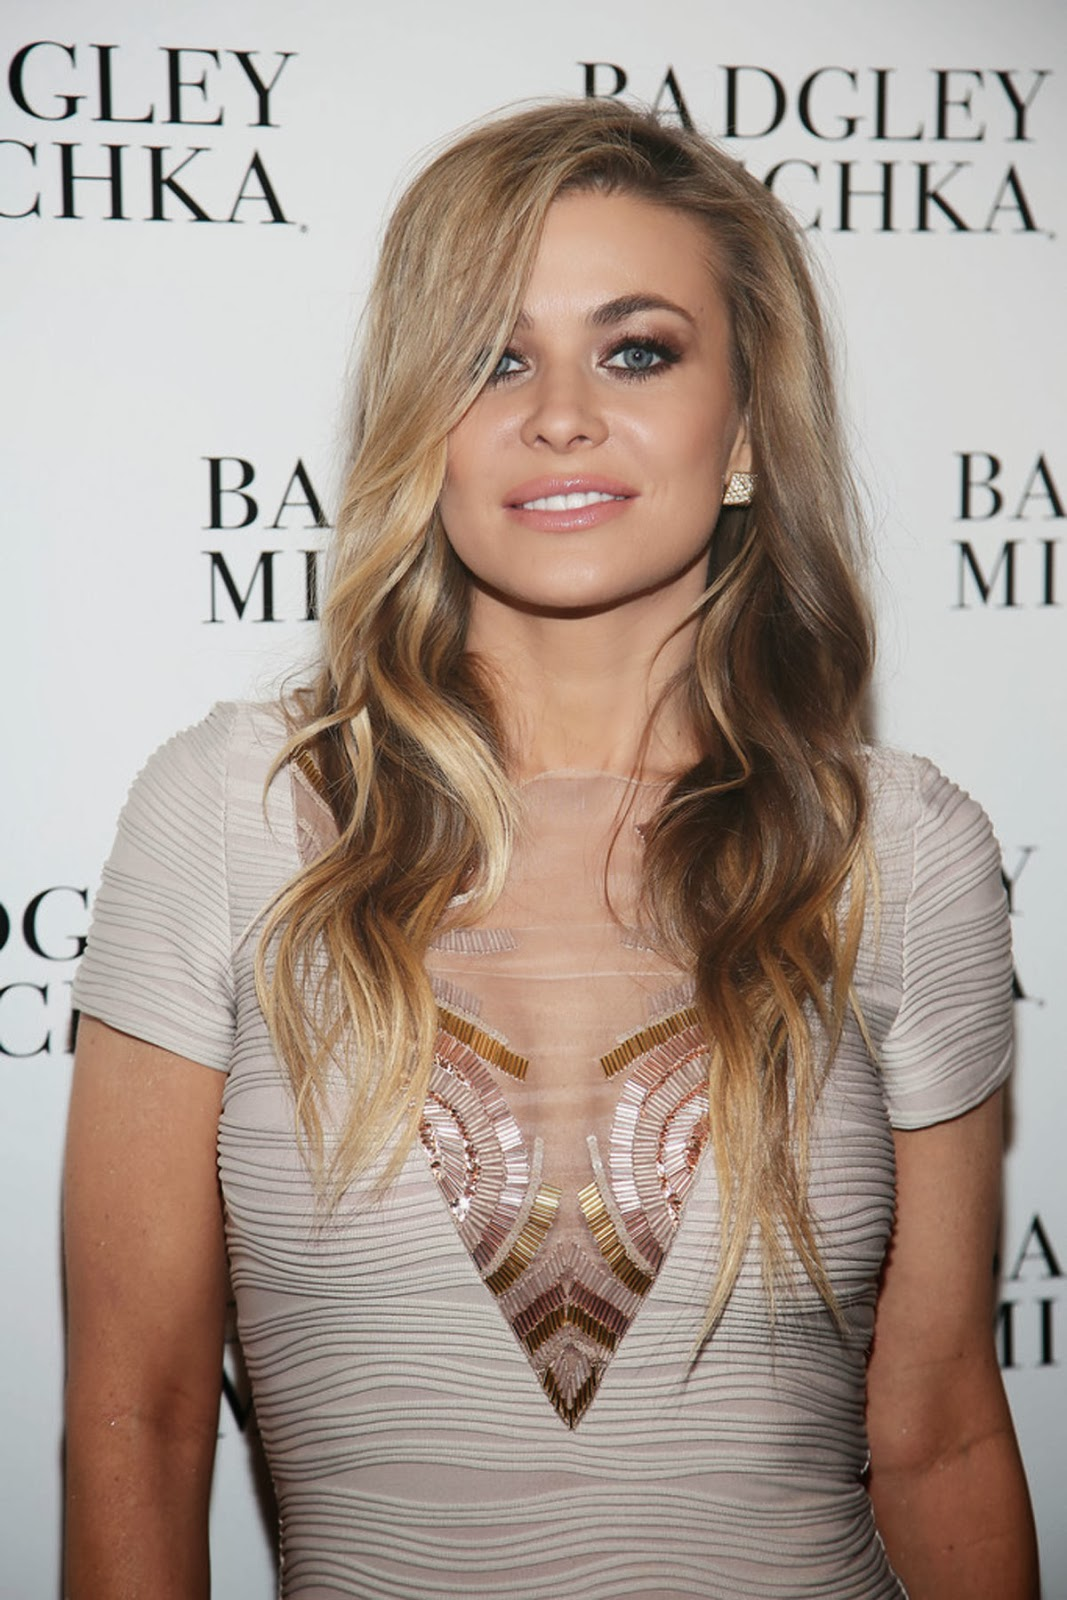 Carmen Electra born April 20, 1972 (age 46) Carmen Electra born April 20, 1972 (age 46) new picture